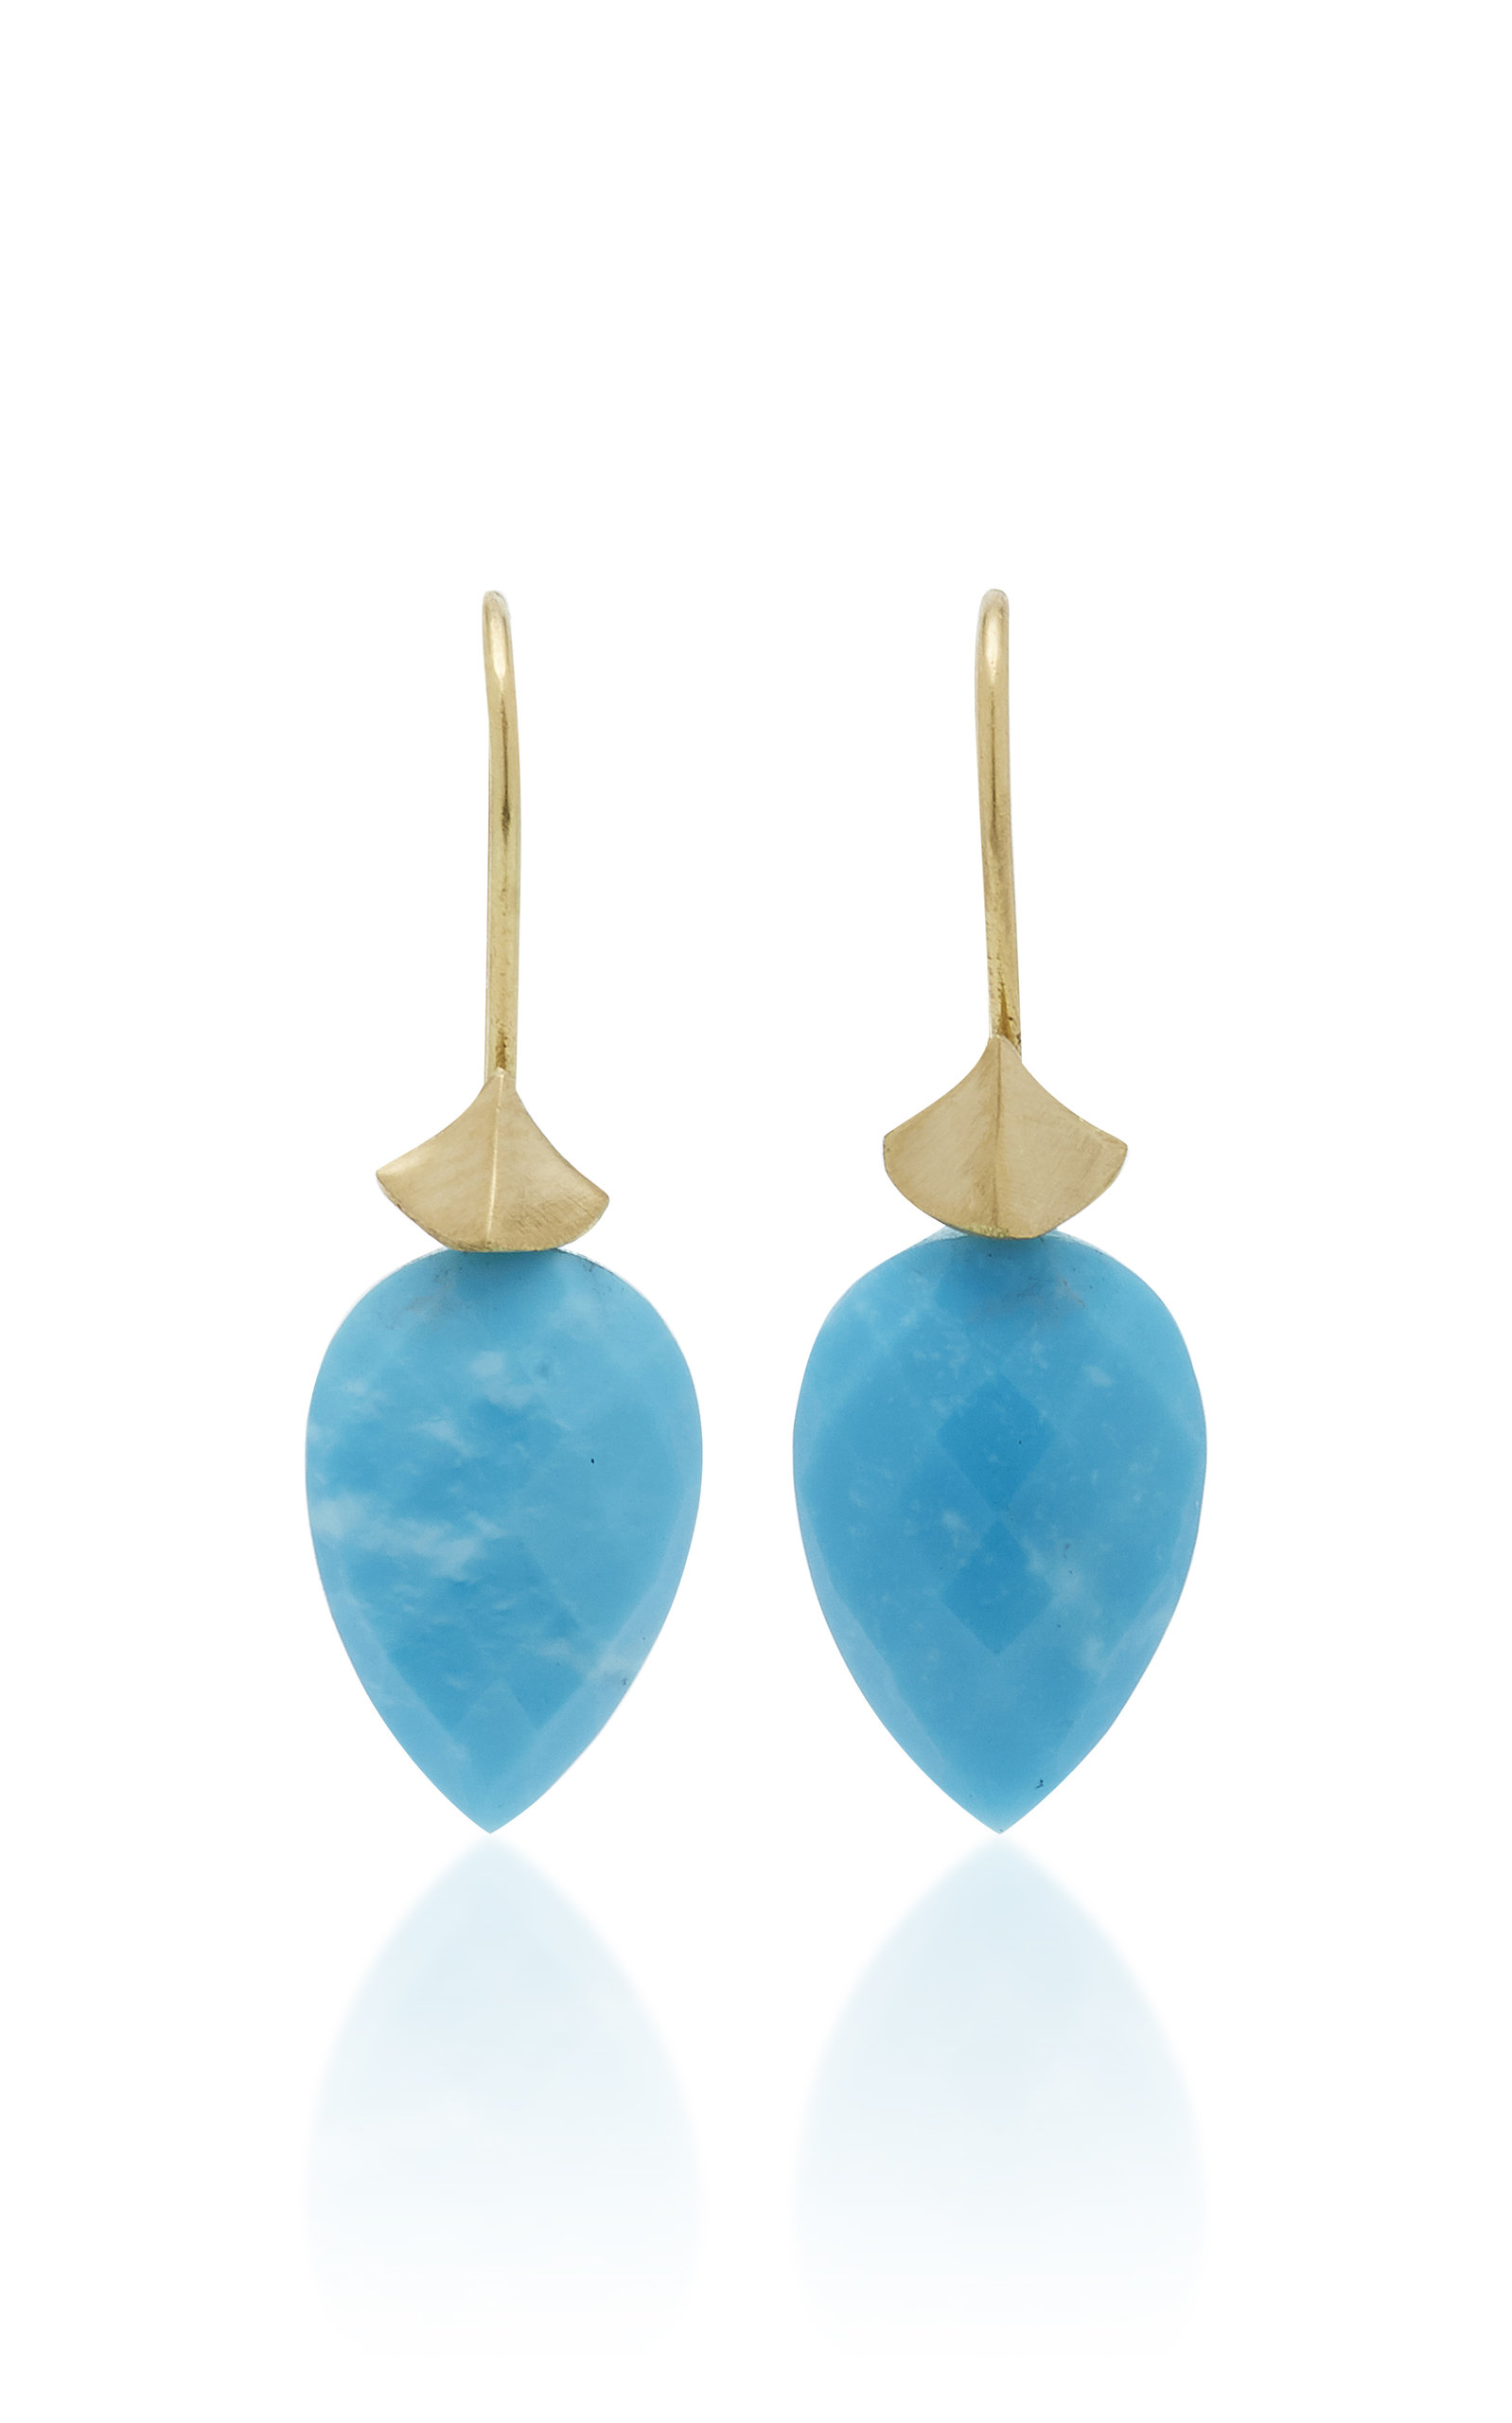 LARGE SIMPLE BUG 18K GOLD TURQUOISE EARRINGS